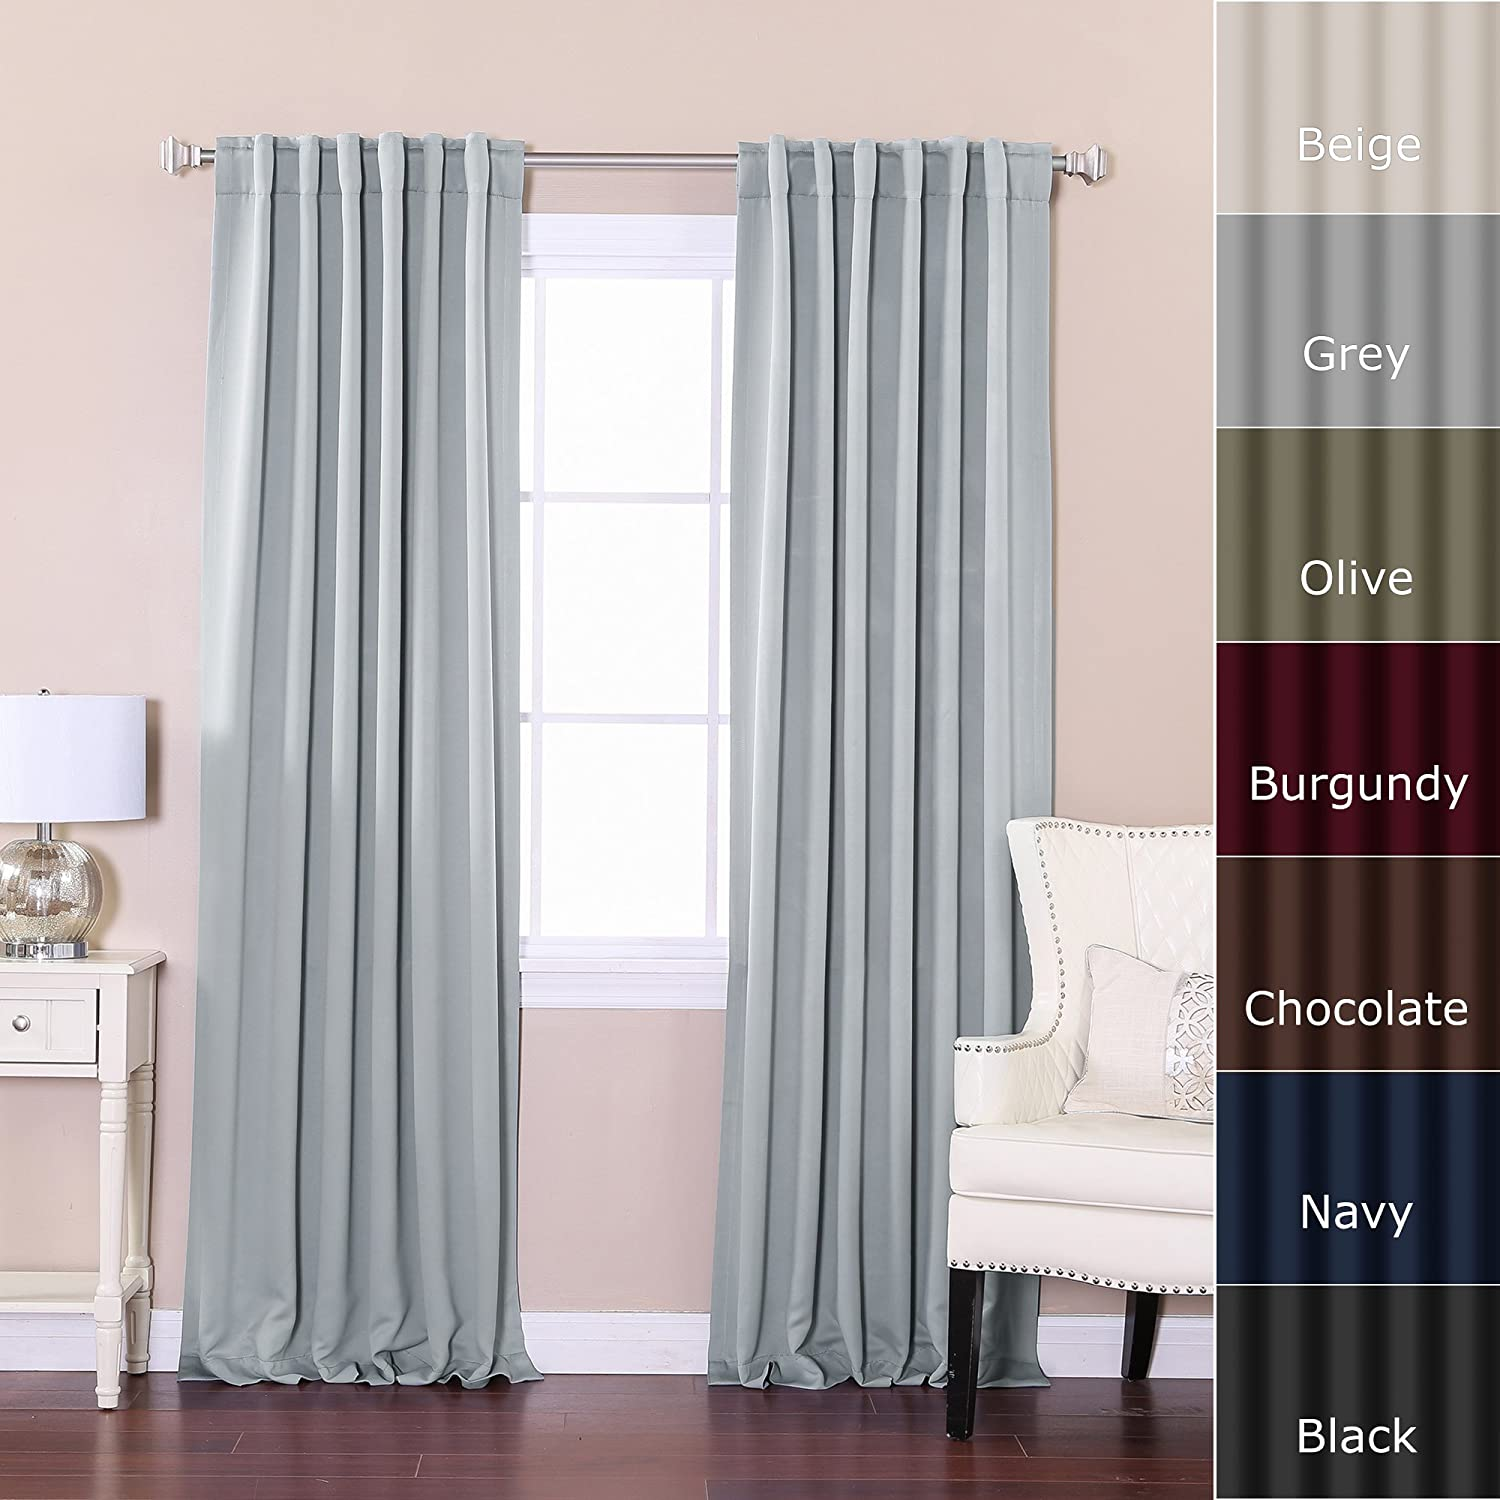 Olive green window panel in curtains amp drapes compare prices - Amazon Com Best Home Fashion Thermal Insulated Blackout Curtains Back Tab Rod Pocket Grey 52 W X 84 L 1 Panel Home Kitchen